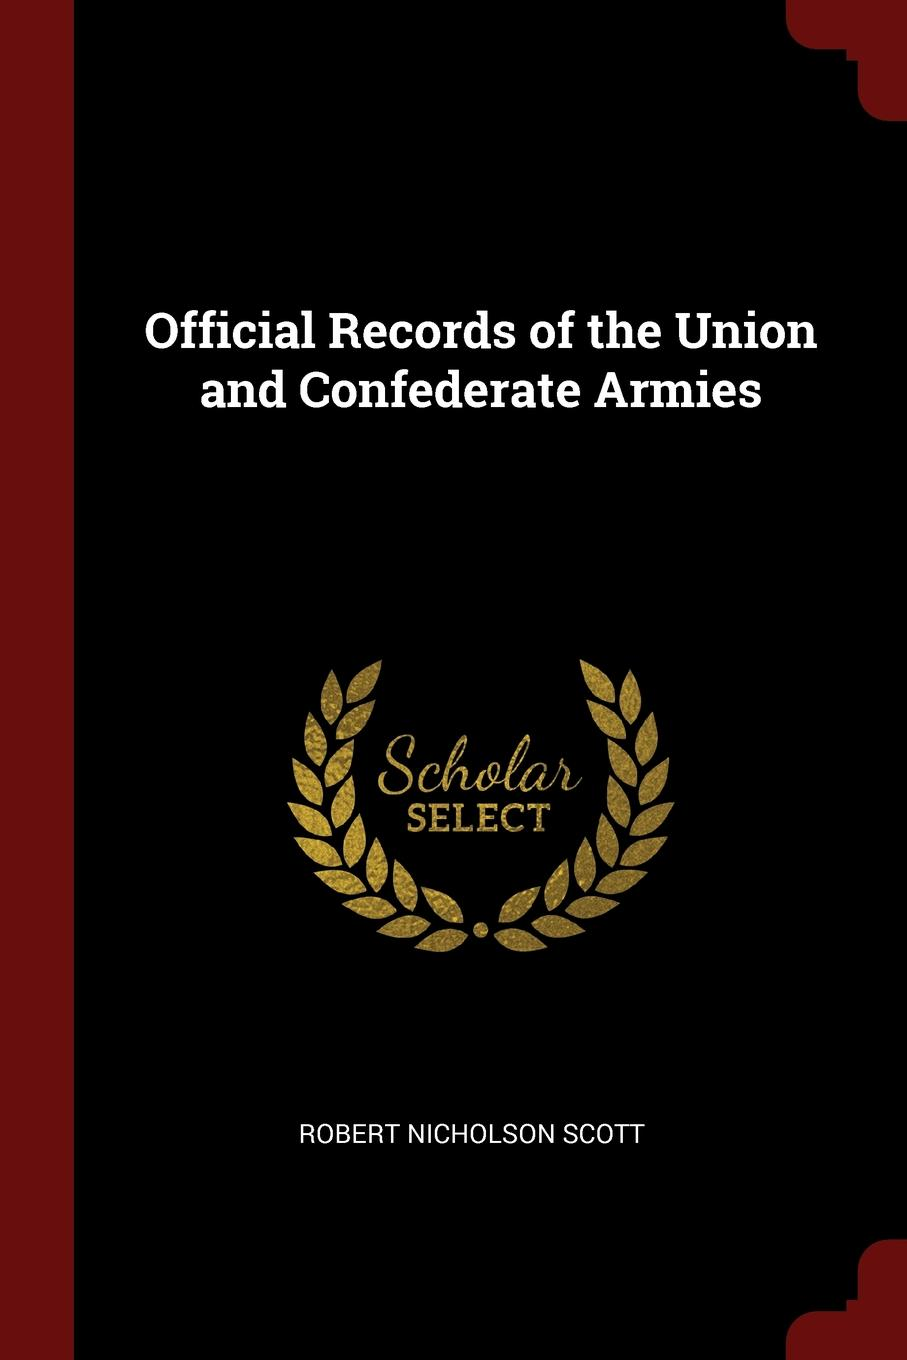 Official Records of the Union and Confederate Armies